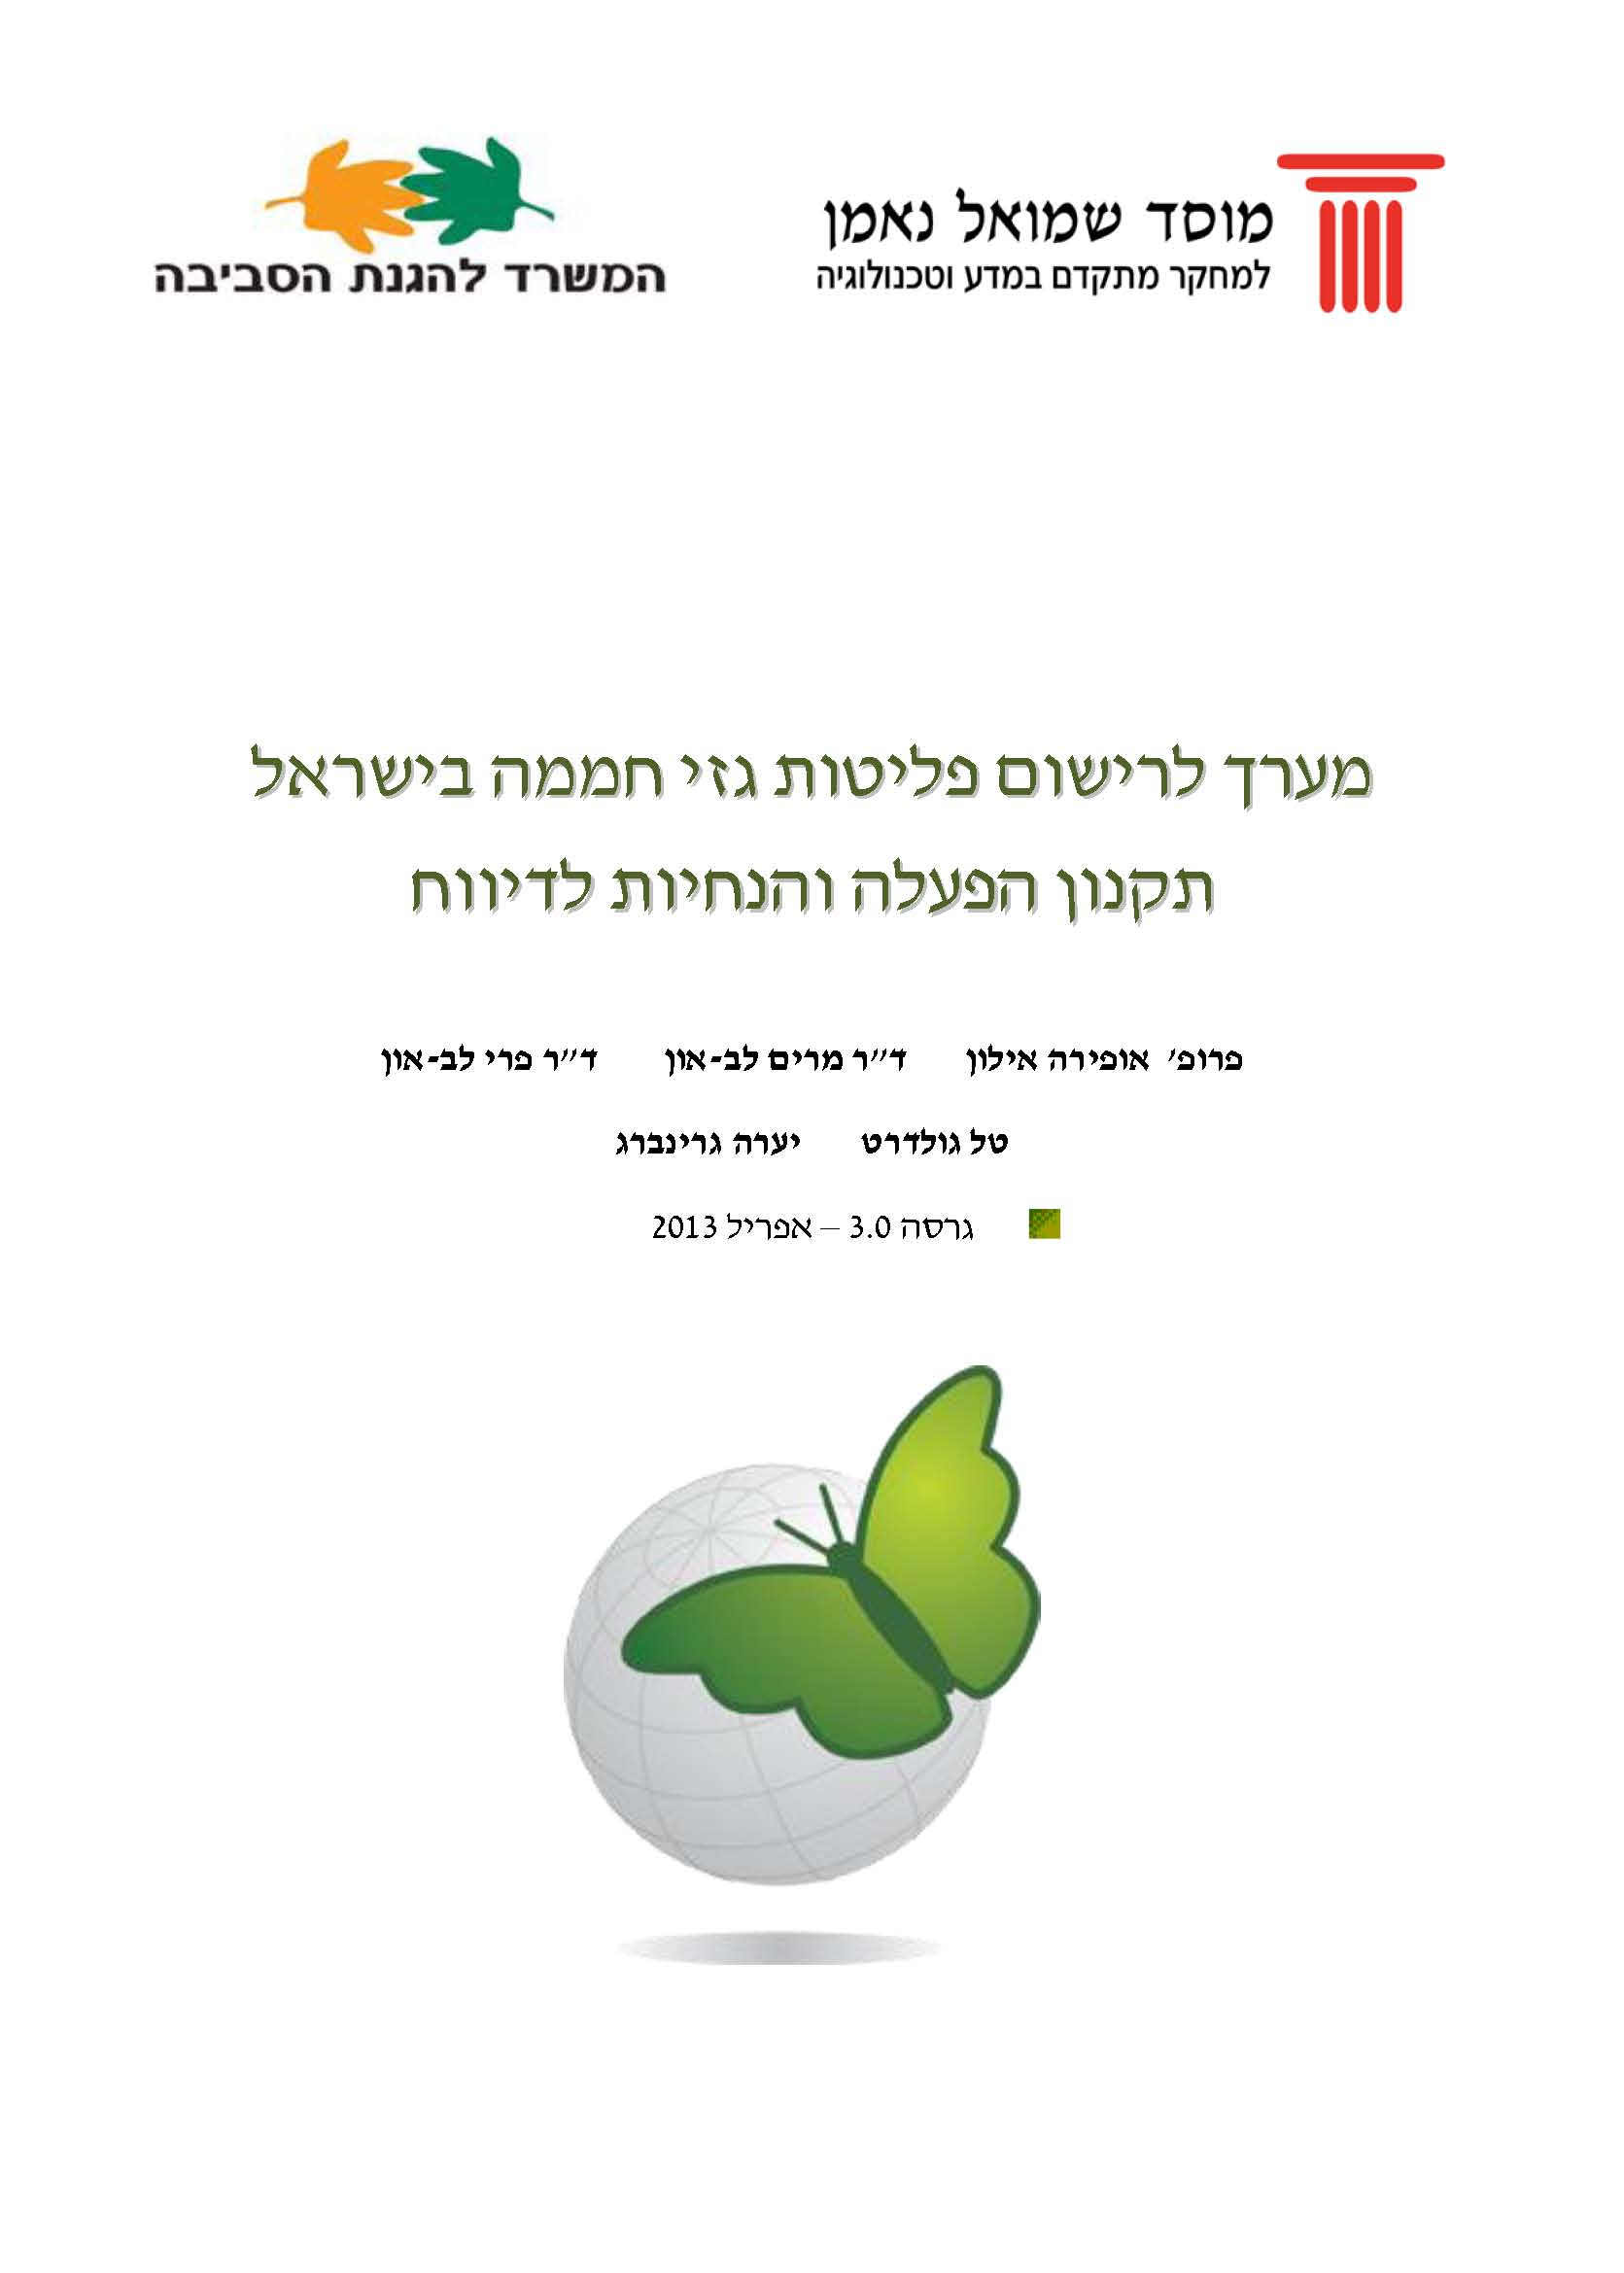 Green House Gases emissions registry in Israel - accounting and reporting protocol